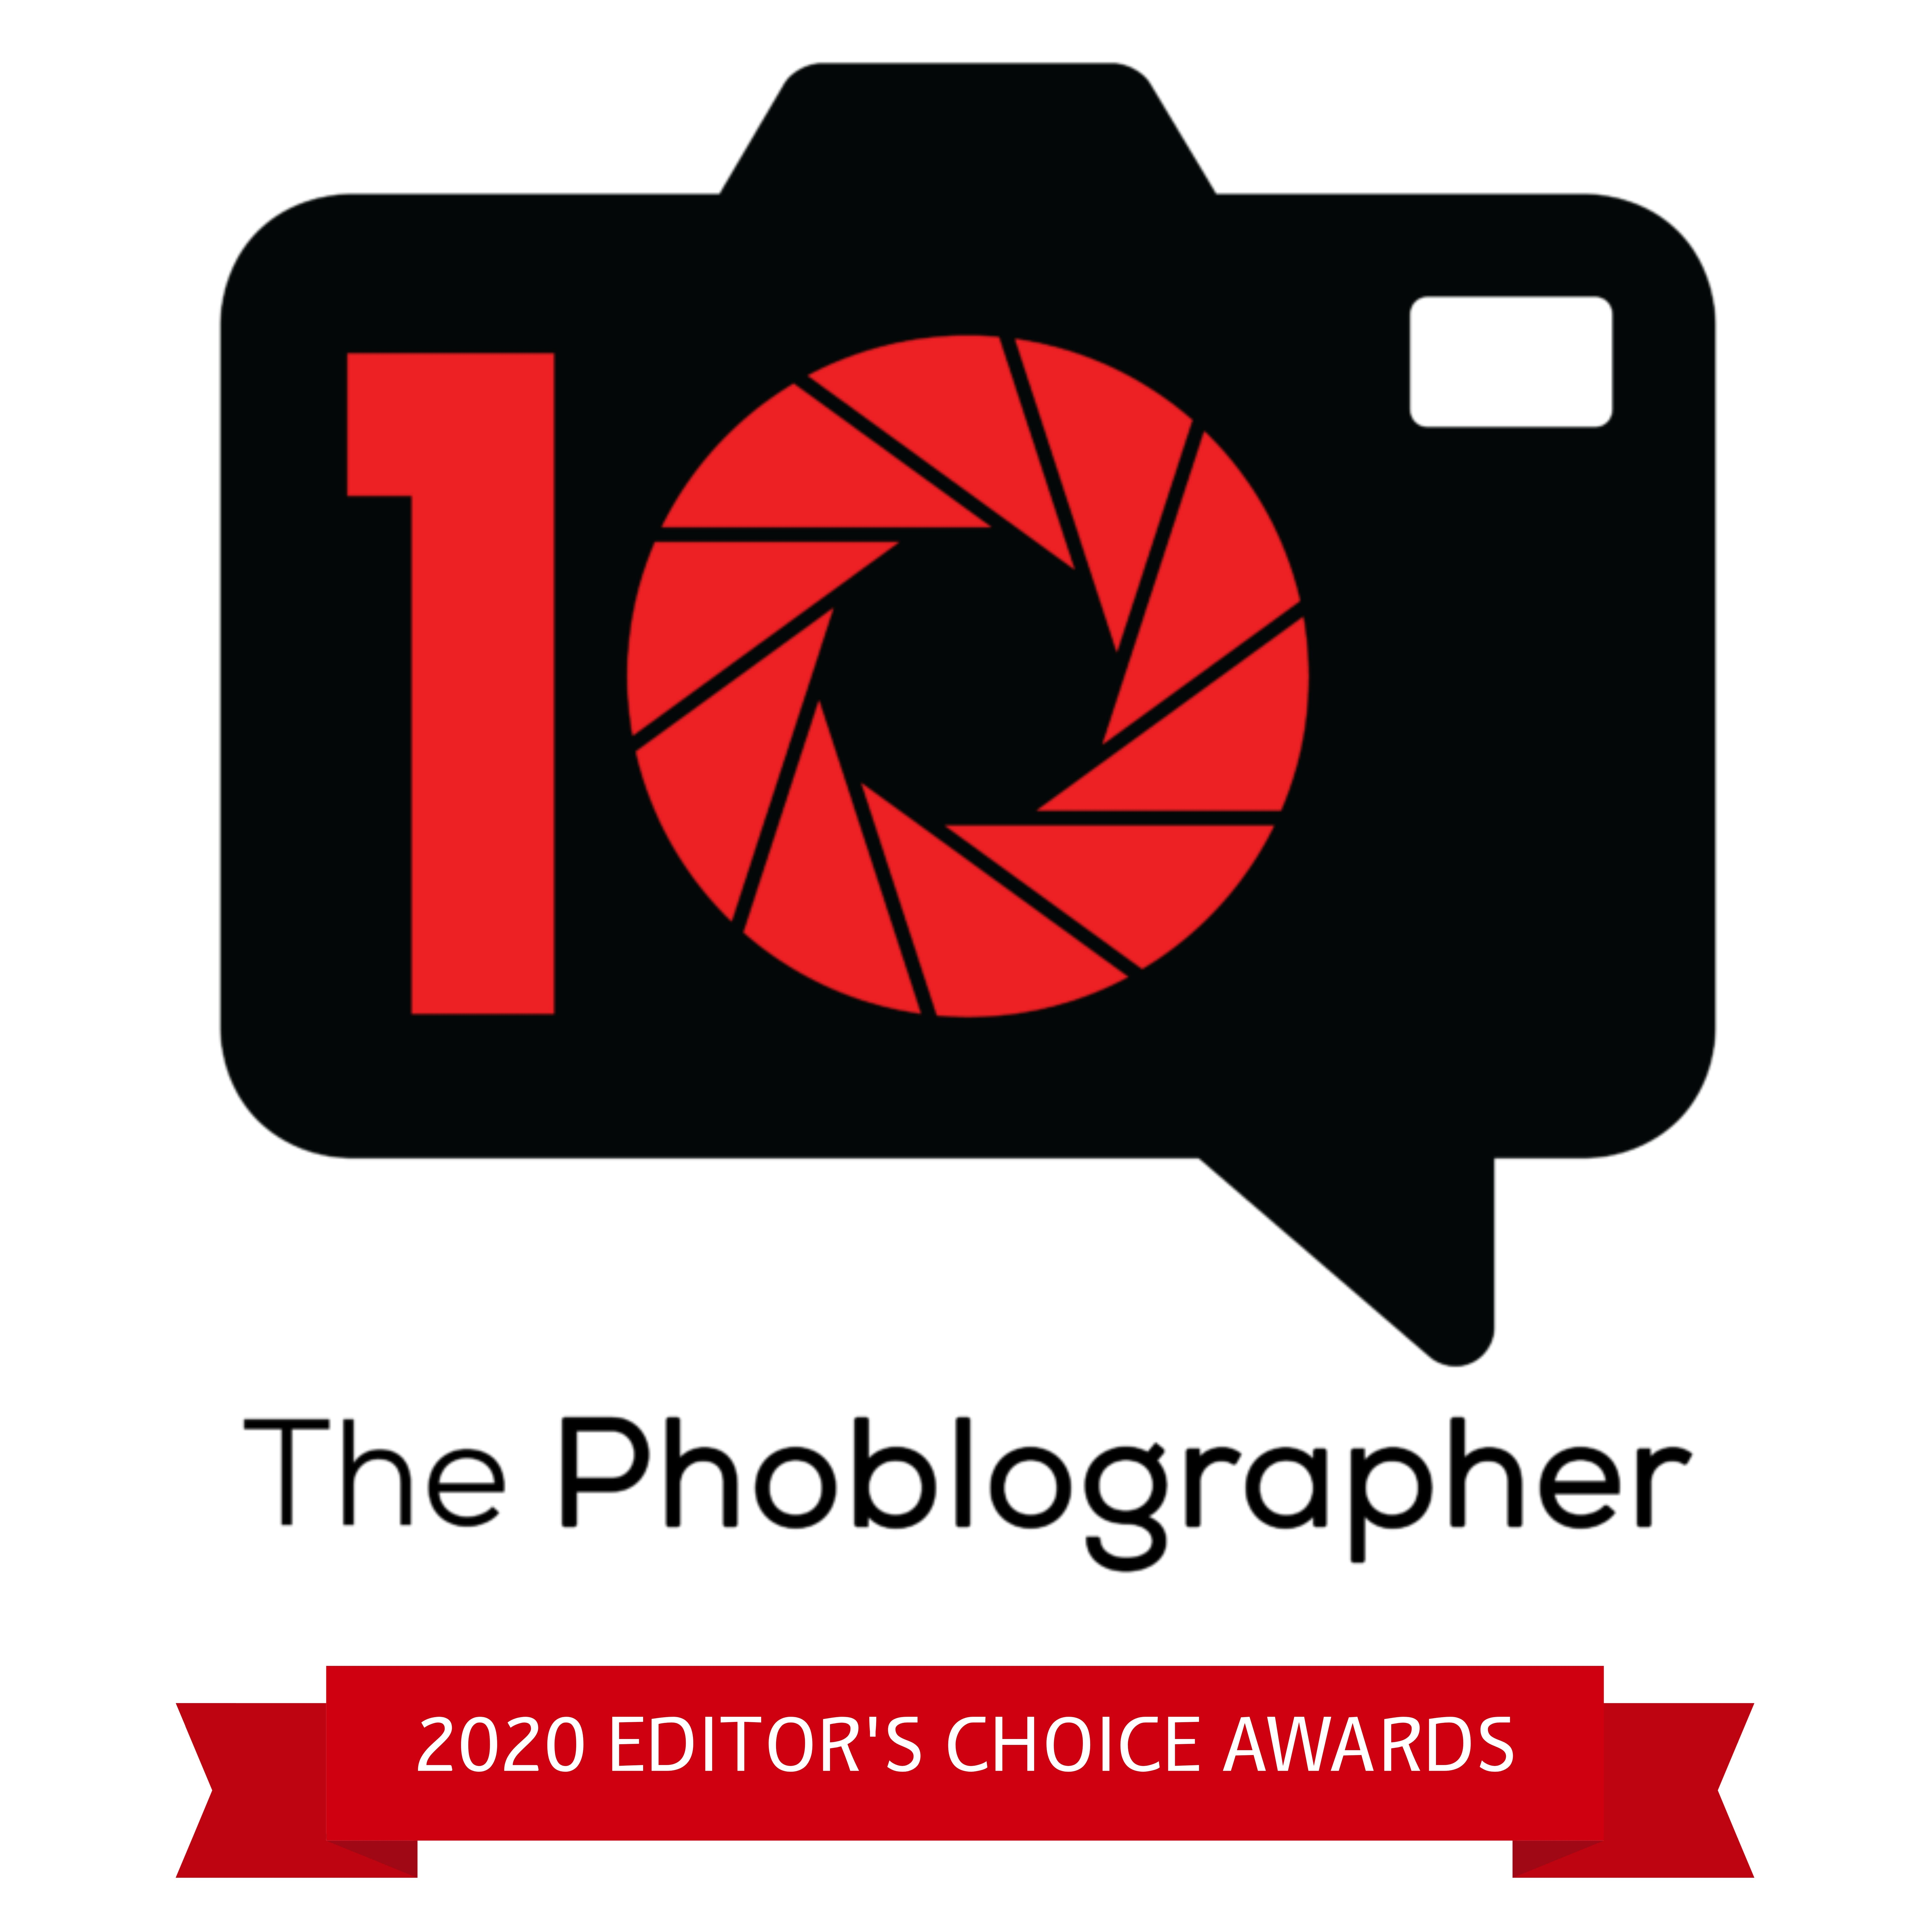 Best Photo Gear: The Phoblographer's Editor's Choice Awards for 2020